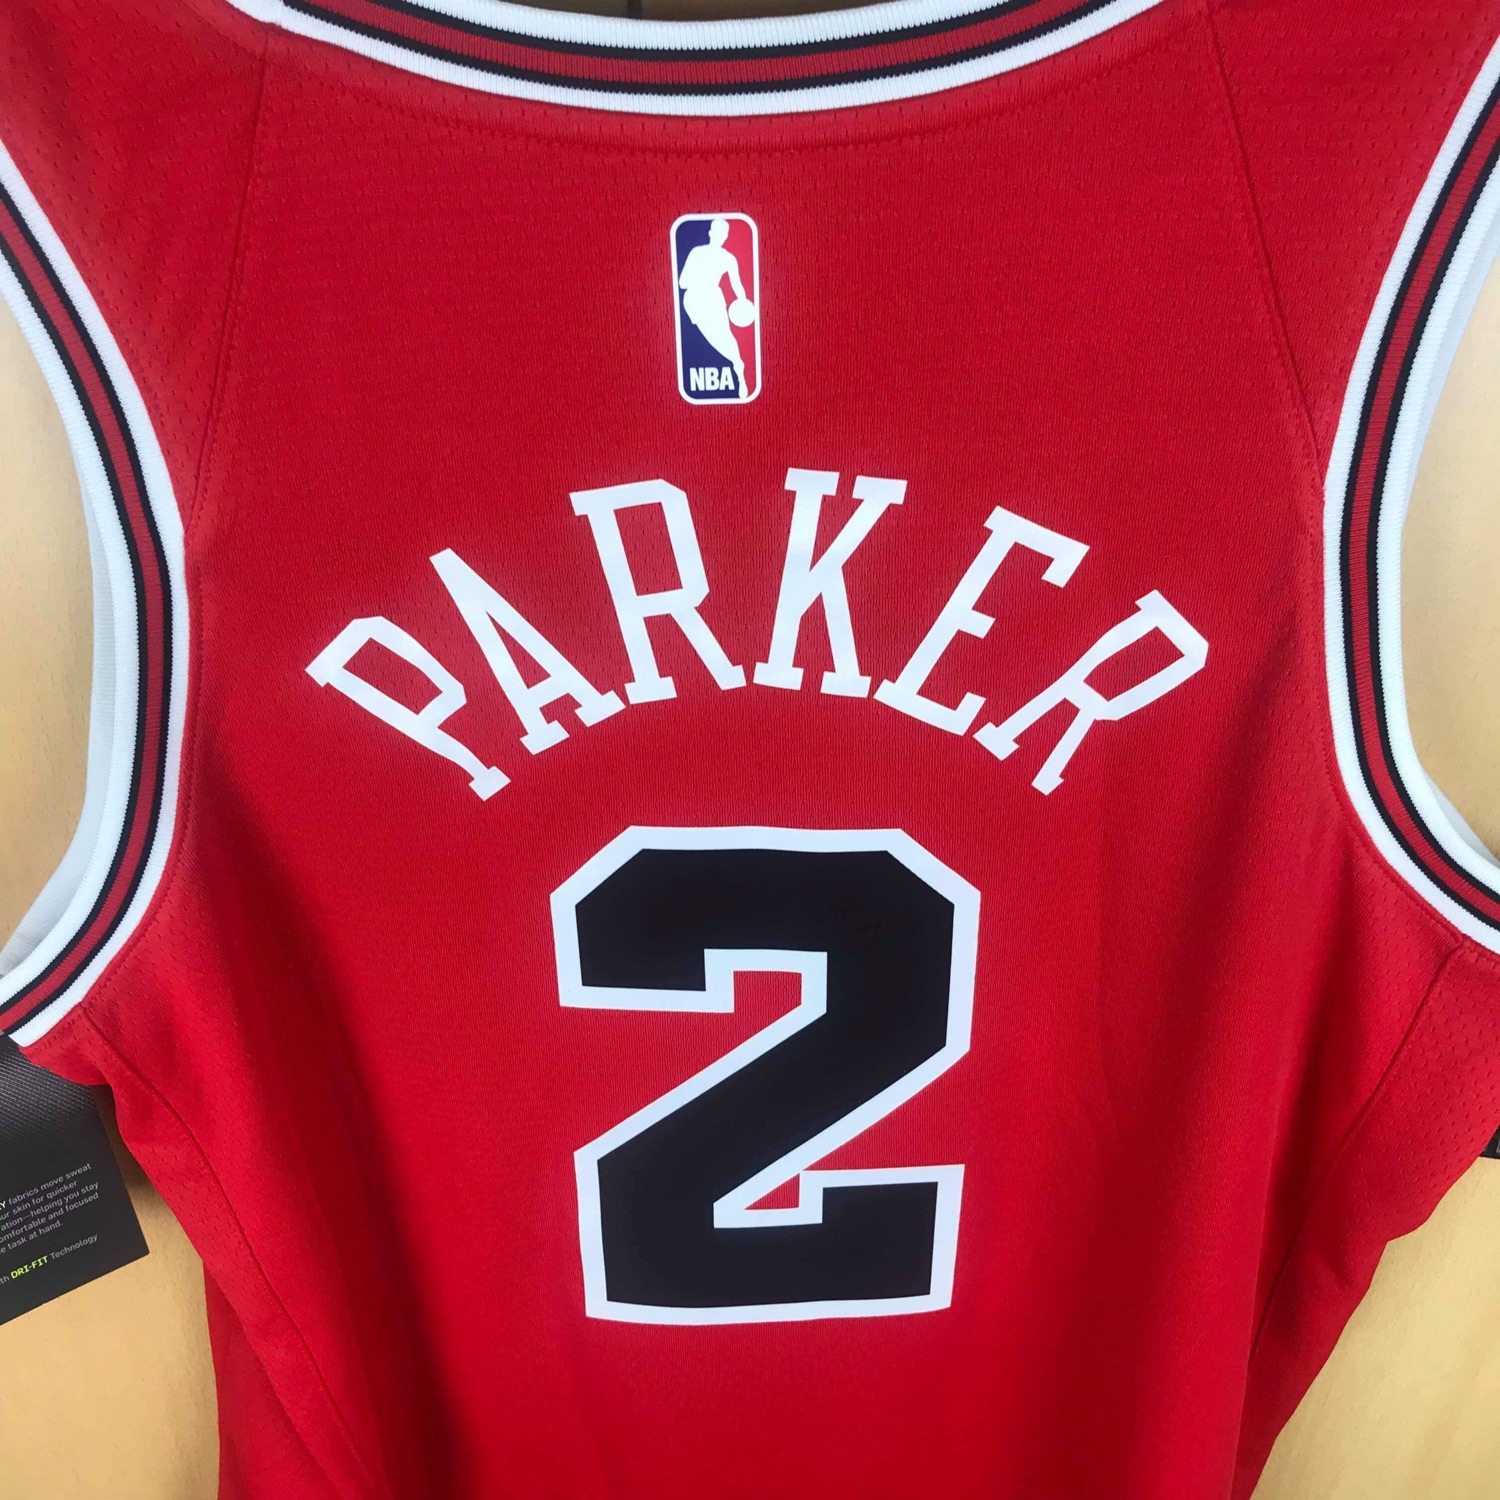 huge selection of e5f9d b8aed Jabari Parker Chicago Bulls Nike Nba Jersey L